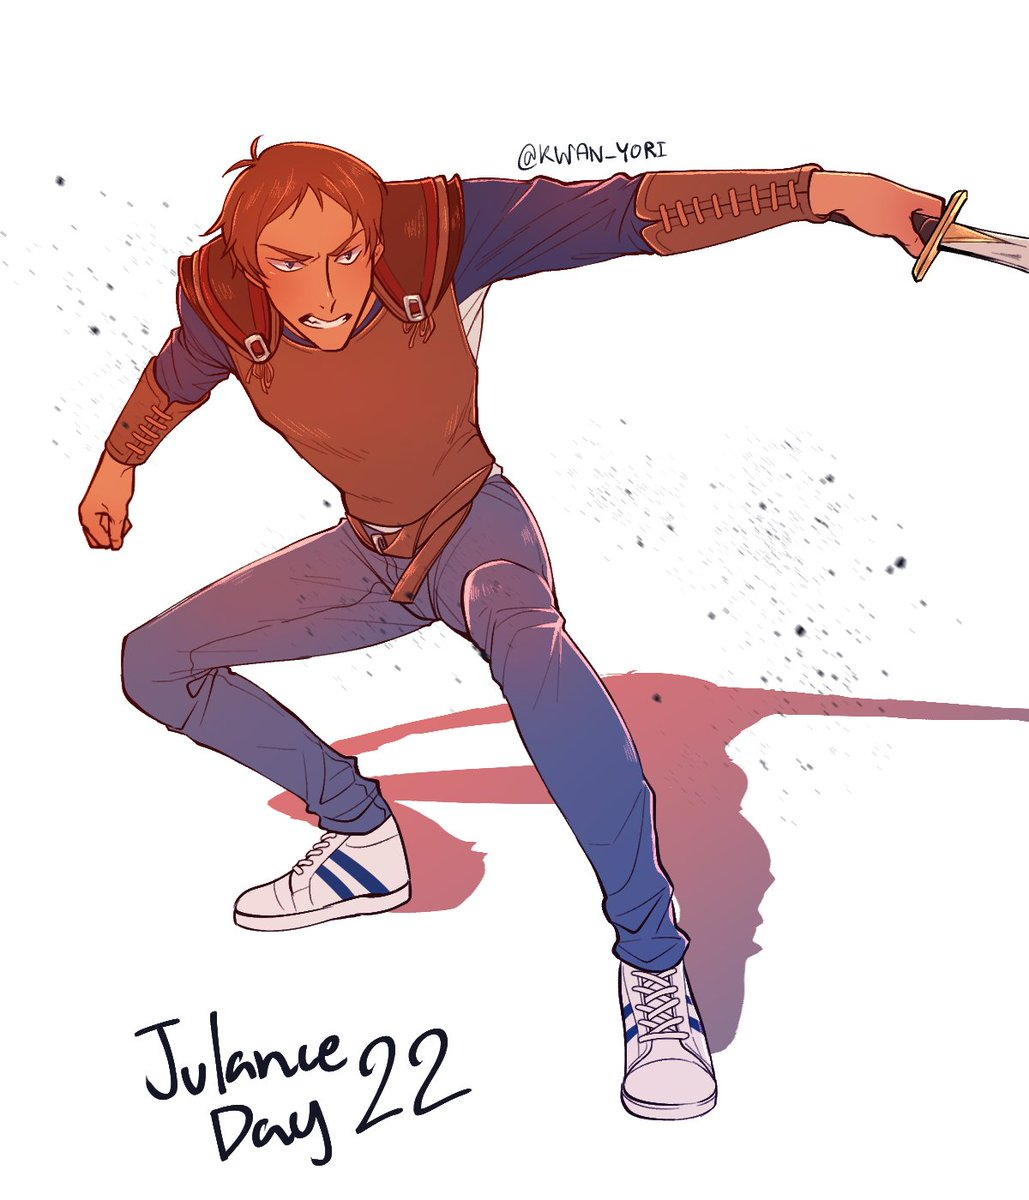 Day 22 : Camp half-blood #julance #voltron  Why is he changing so much? PS. I used costume reference from Percy Jackson and poseture from 3D model. <br>http://pic.twitter.com/fzjn4N3UUs